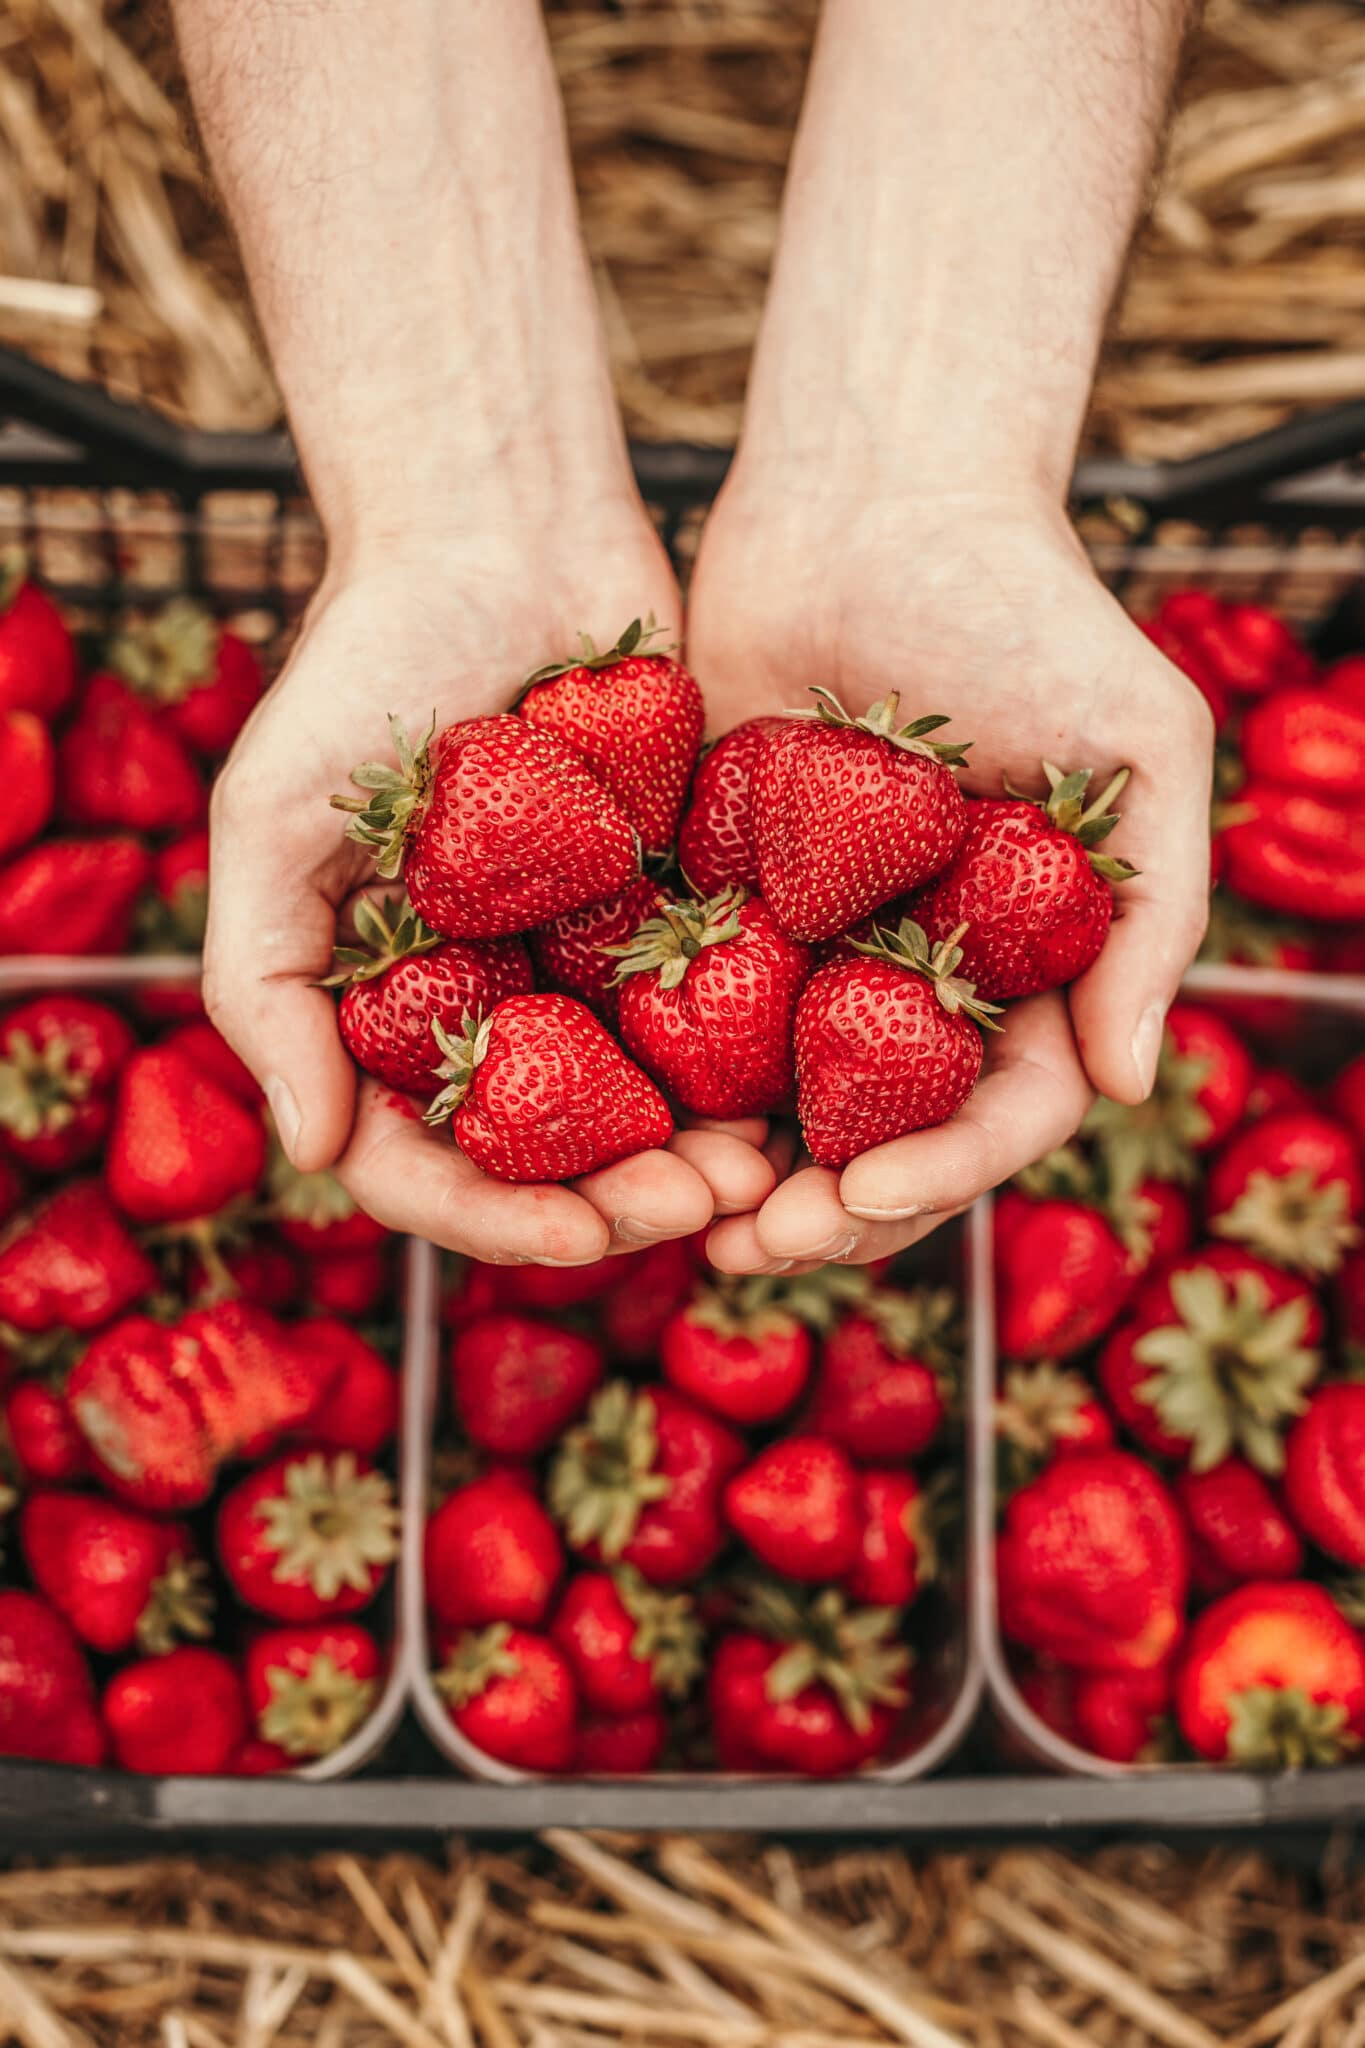 Two hands cupped together holding freshly picked bright red strawberries.  Below, on the ground, baskets are filled to the brim with recently picked berries.